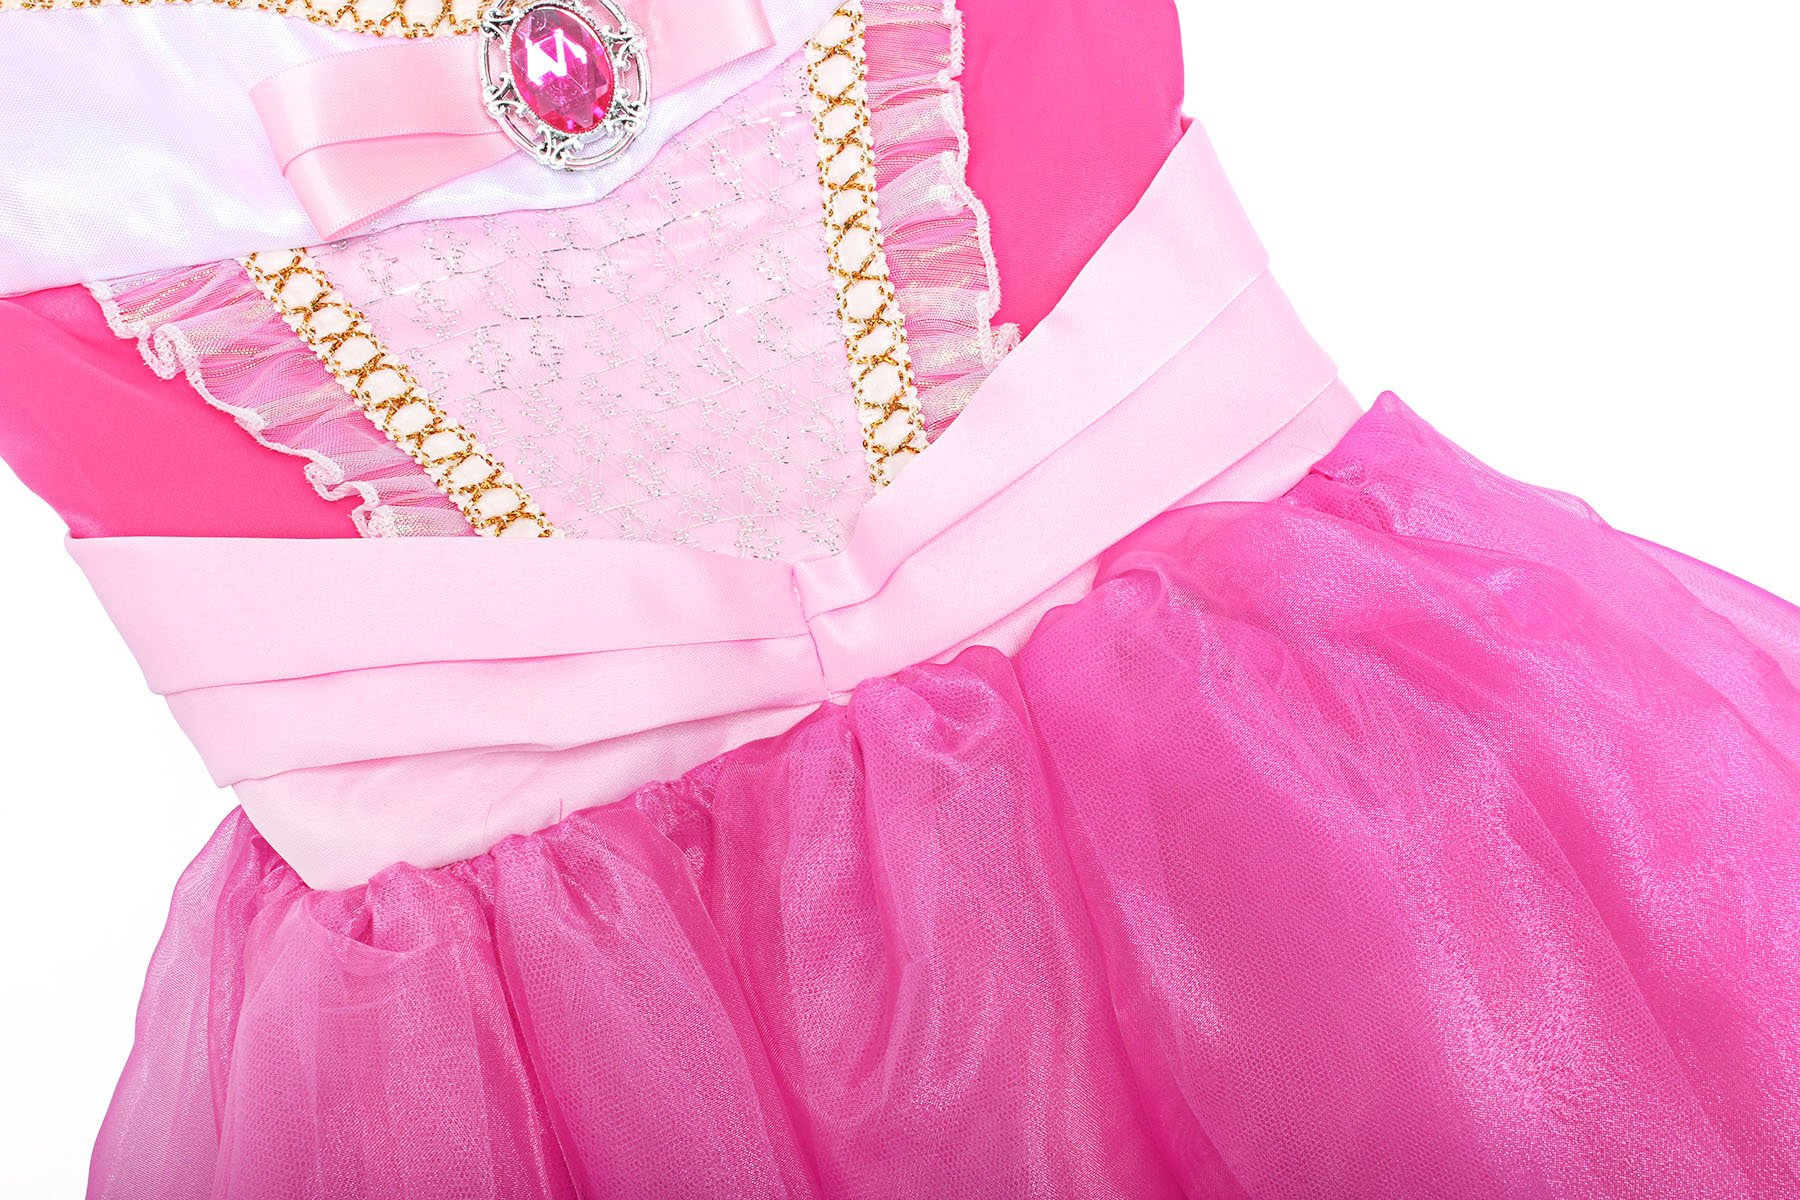 ReliBeauty Girls Drop Shoulder Princess Aurora Costume Dress up, Hot Pink, 7-8 by ReliBeauty (Image #4)